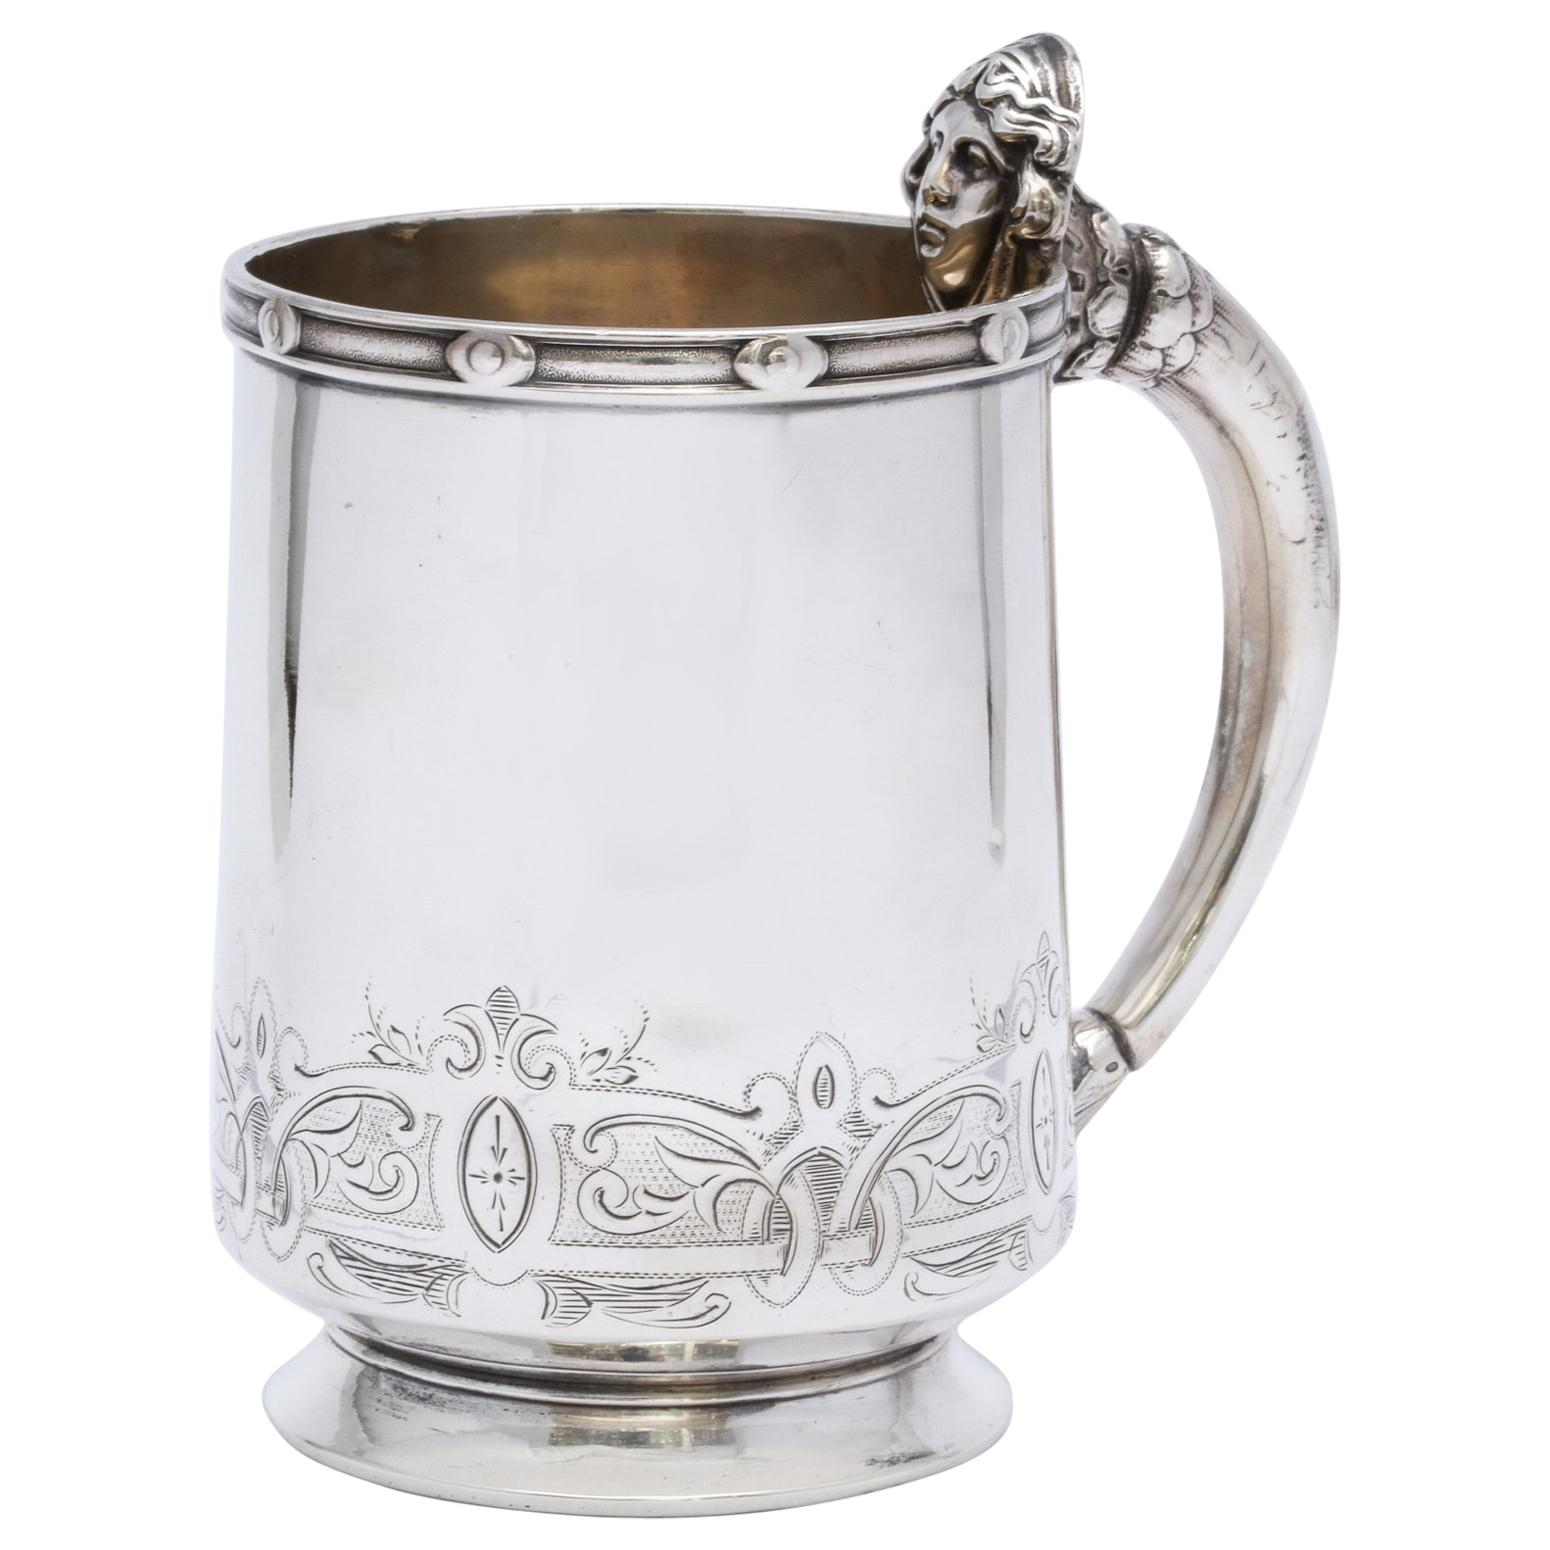 Neoclassical Sterling Silver Child's Cup/Mug by Gorham